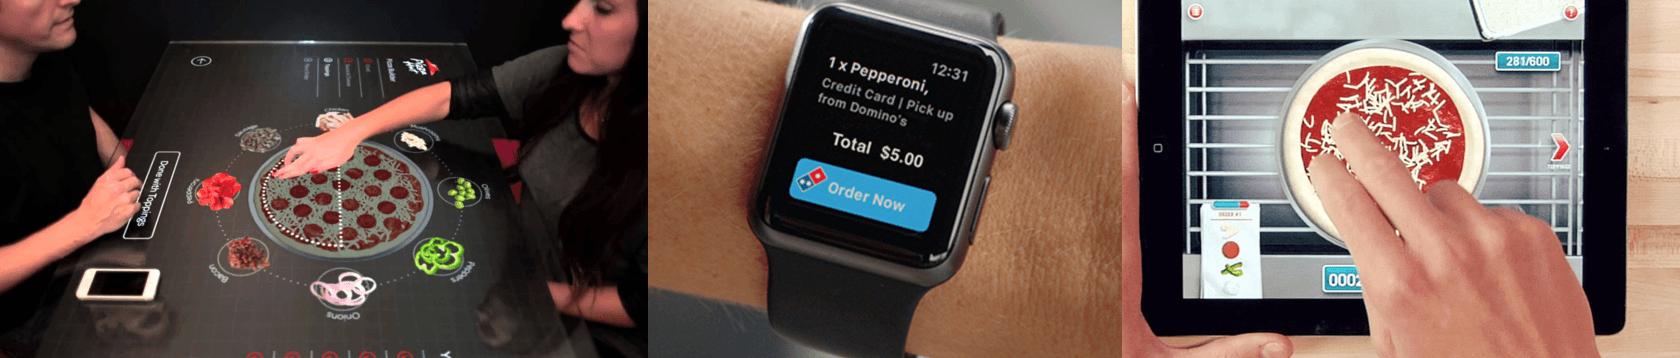 pizza chain technology mobile order drones Apple watch